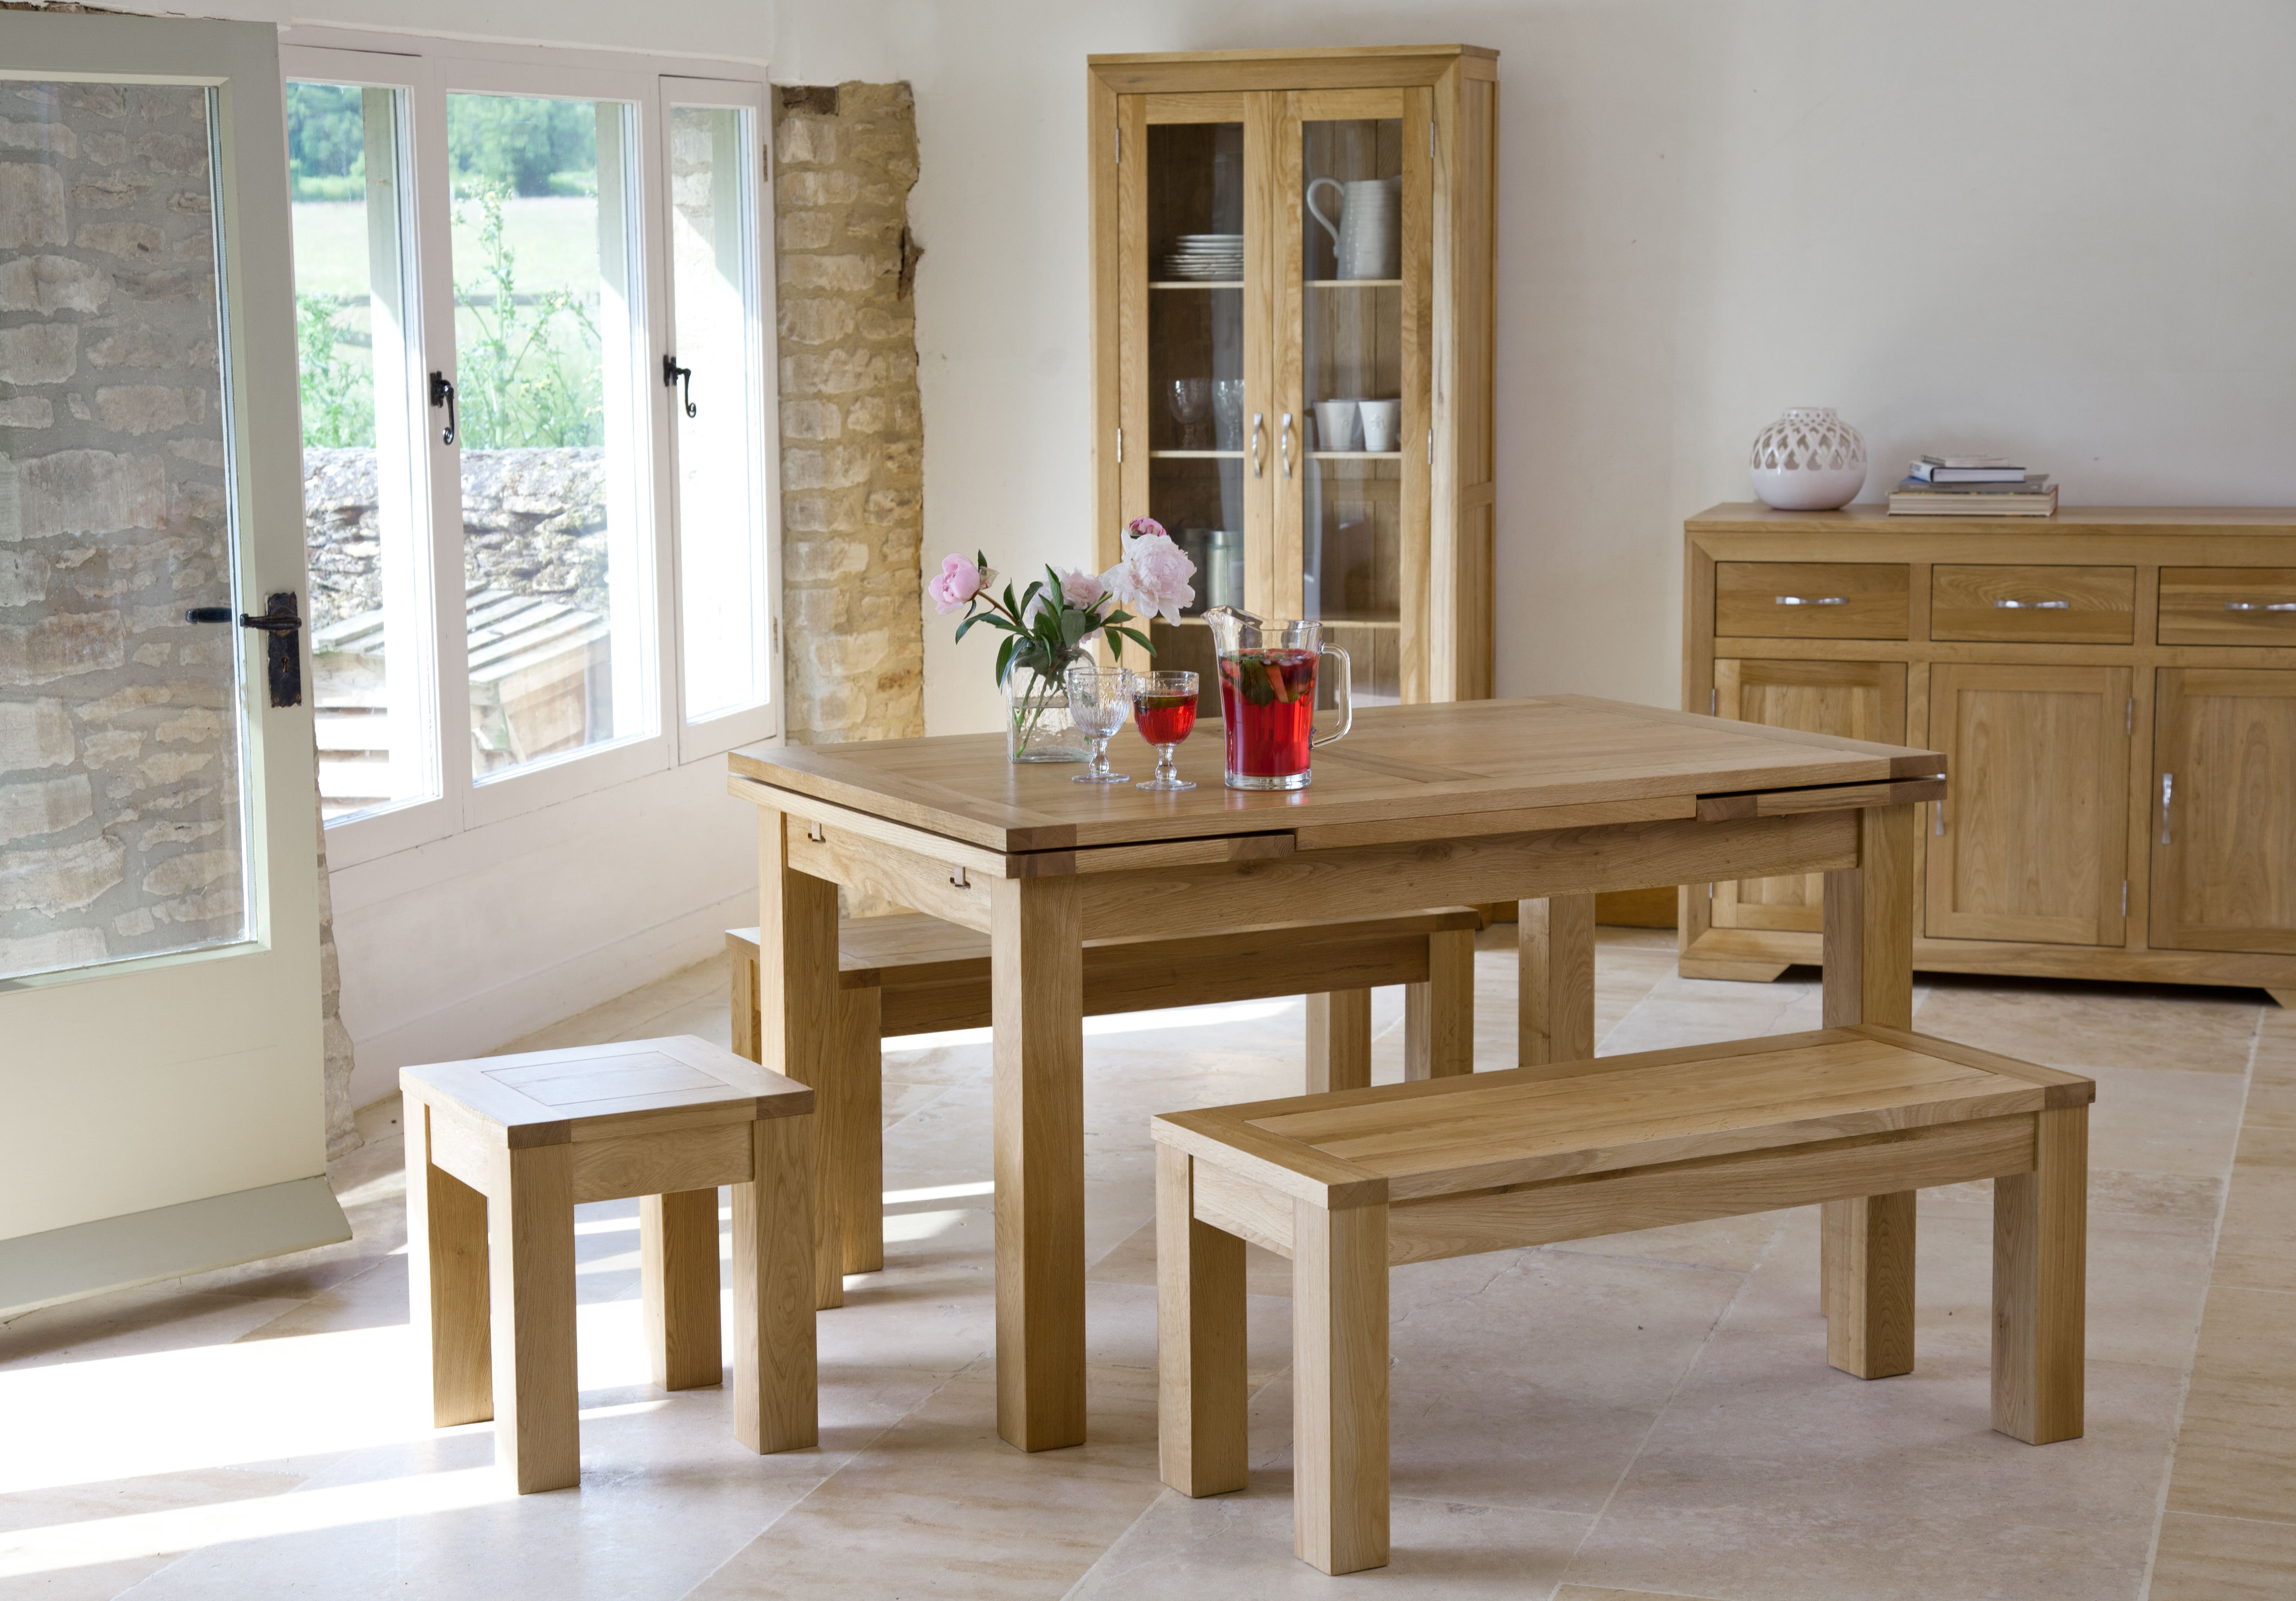 Oak Furniture Living Room Bevel Solid Oak Range Dining Furniture Oak Table Bench Set